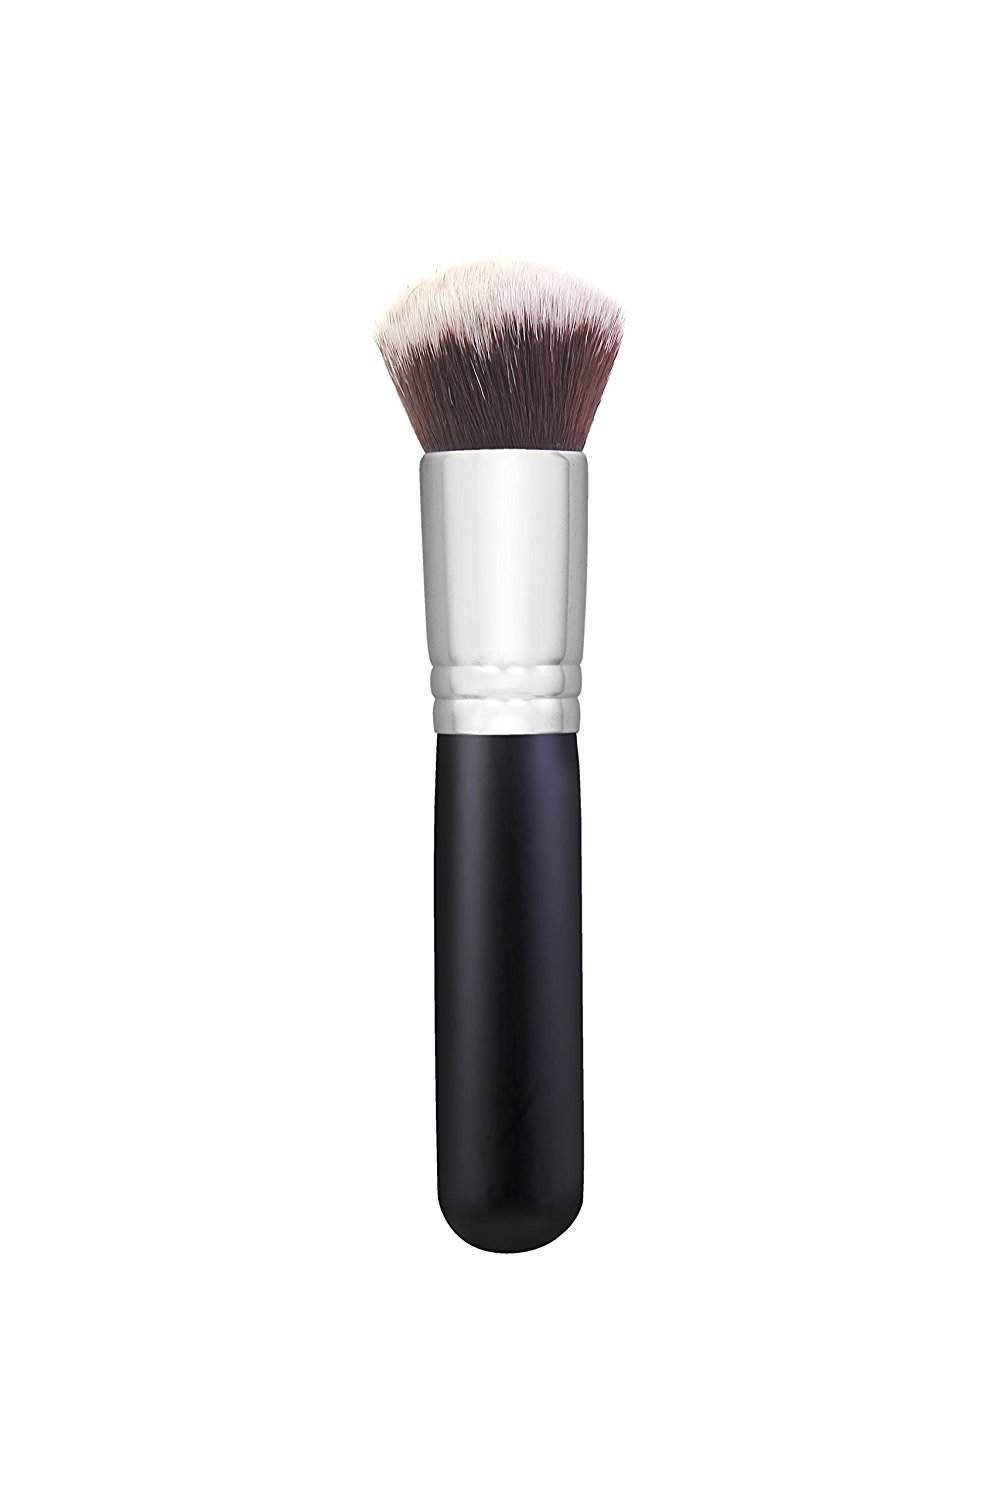 Morphe Deluxe Makeup Buffer Brush M439 - Professional high quality makeup brush for whole face foundation, contour, bronzer